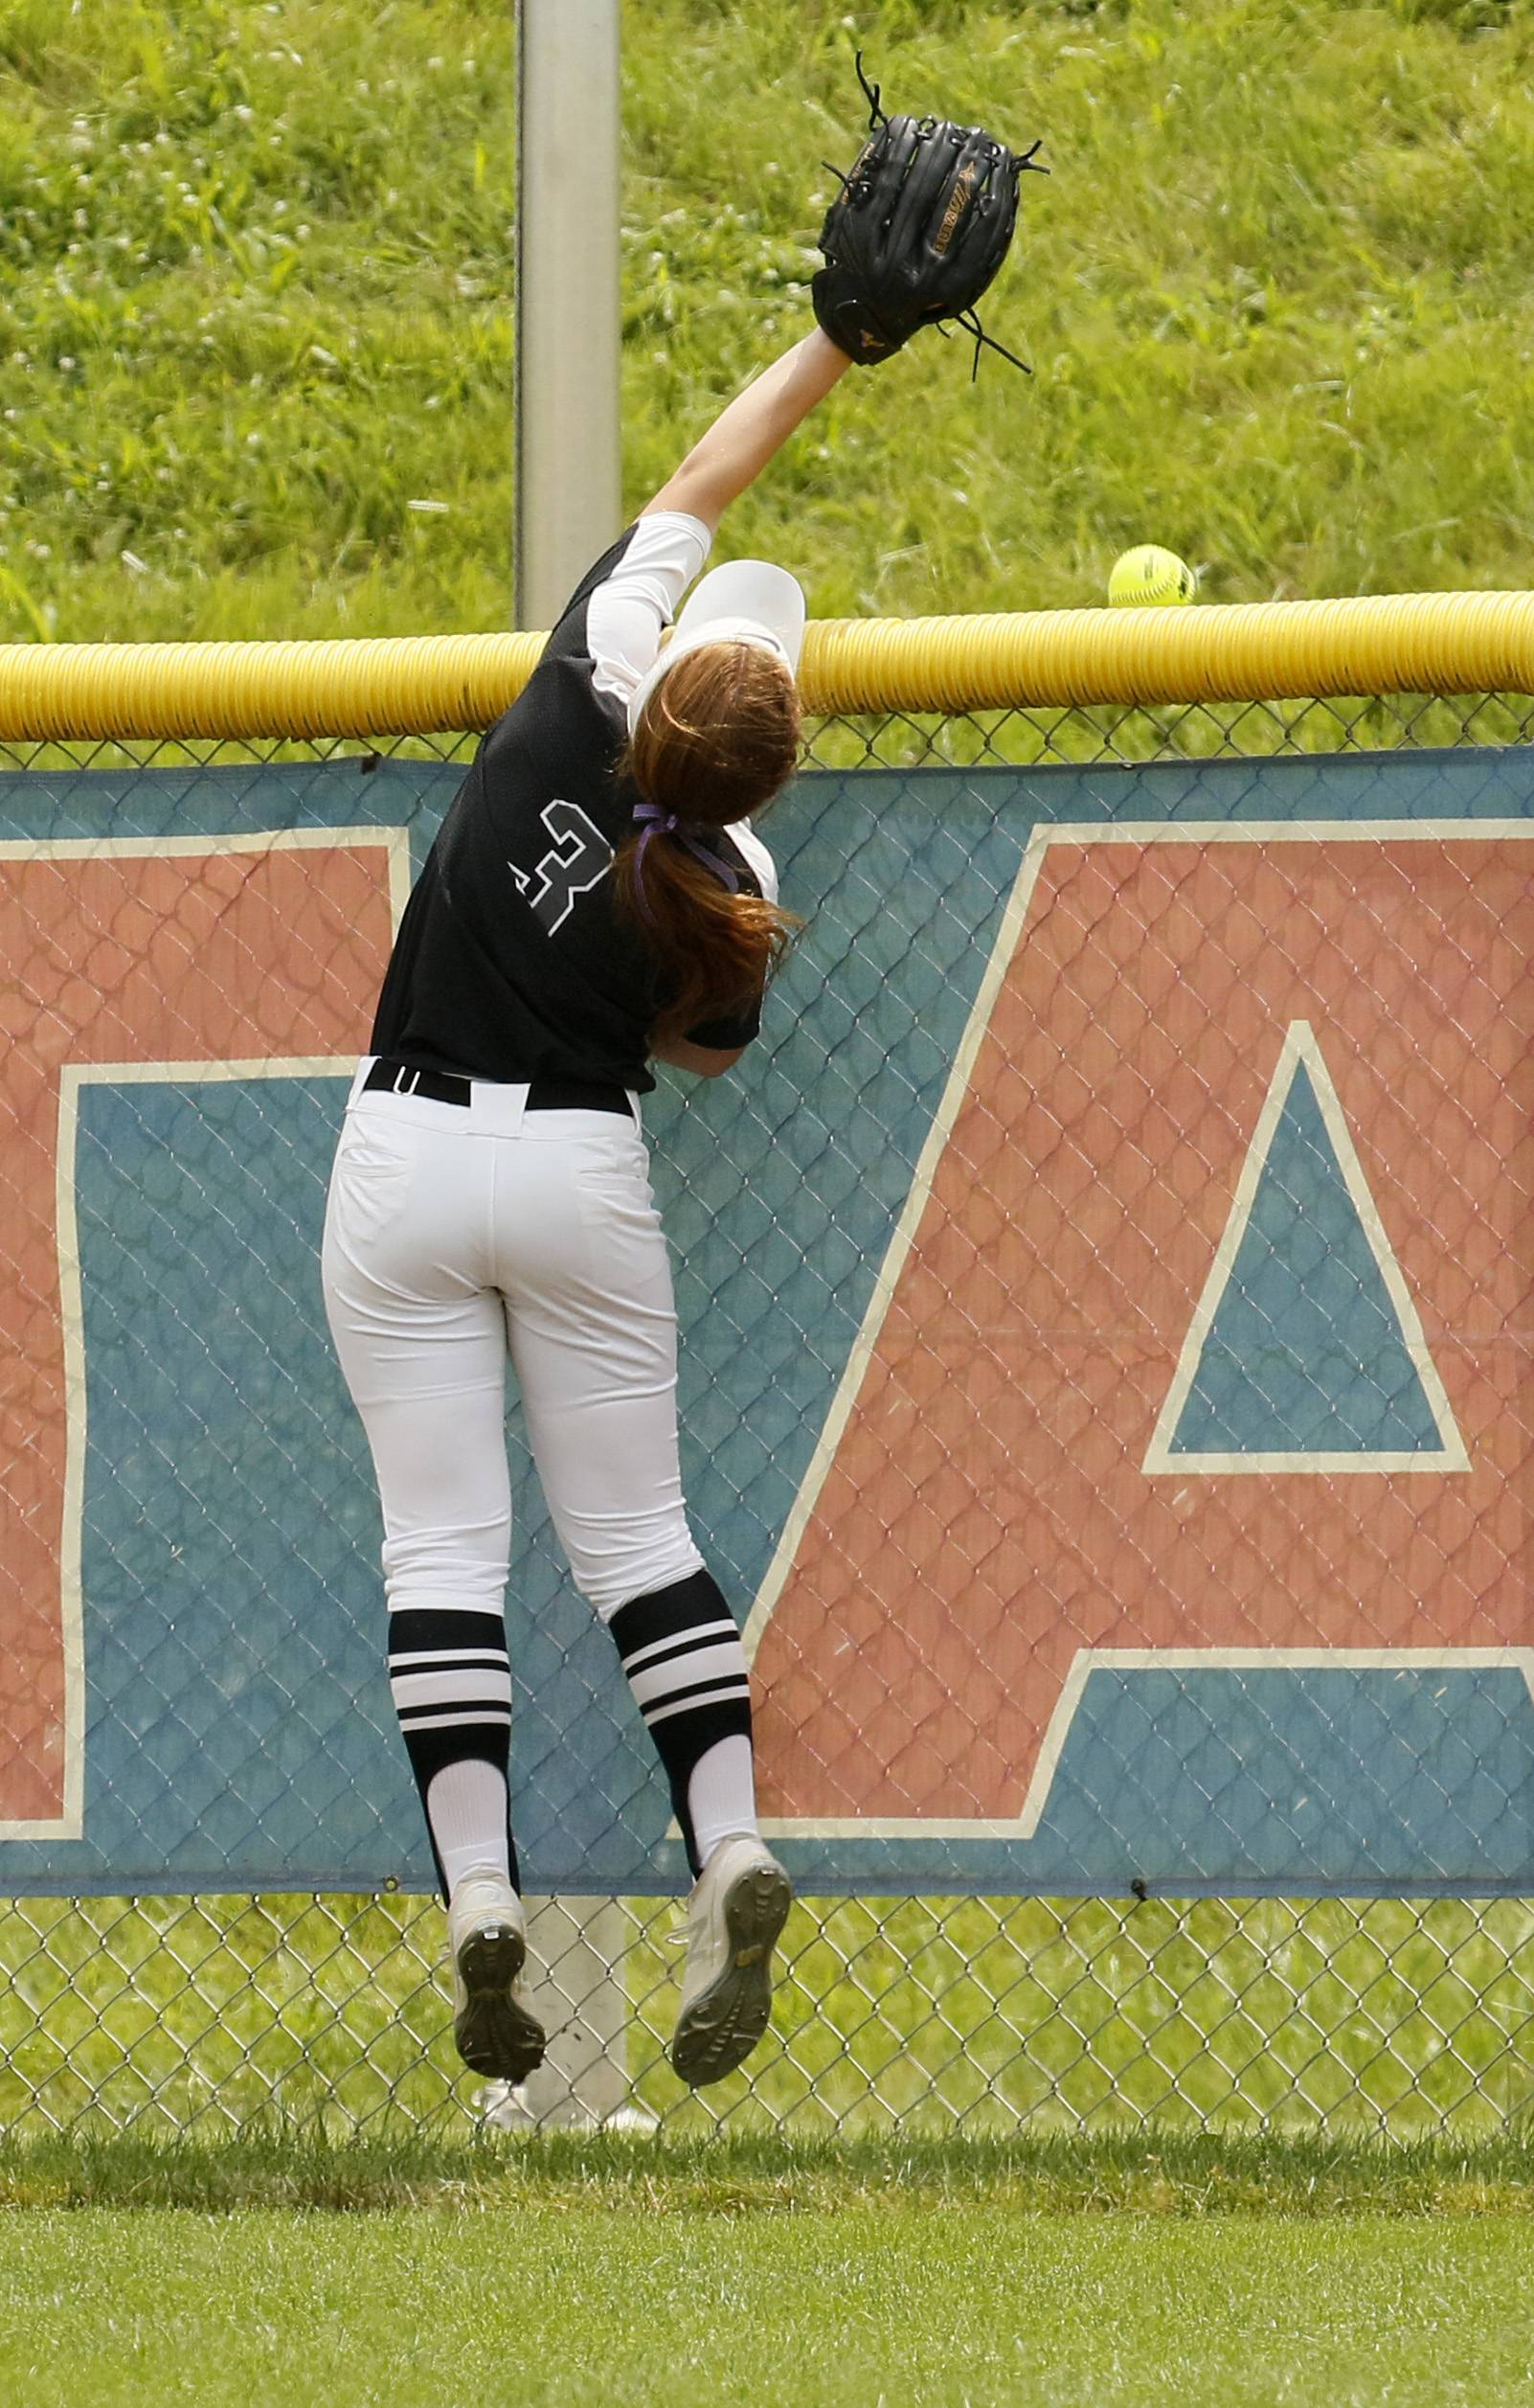 Kaneland center fielder Maddy Wheatley (3) leaps but is unable to catch a Montini Catholic home run during the IHSA Class 3A state softball championship.